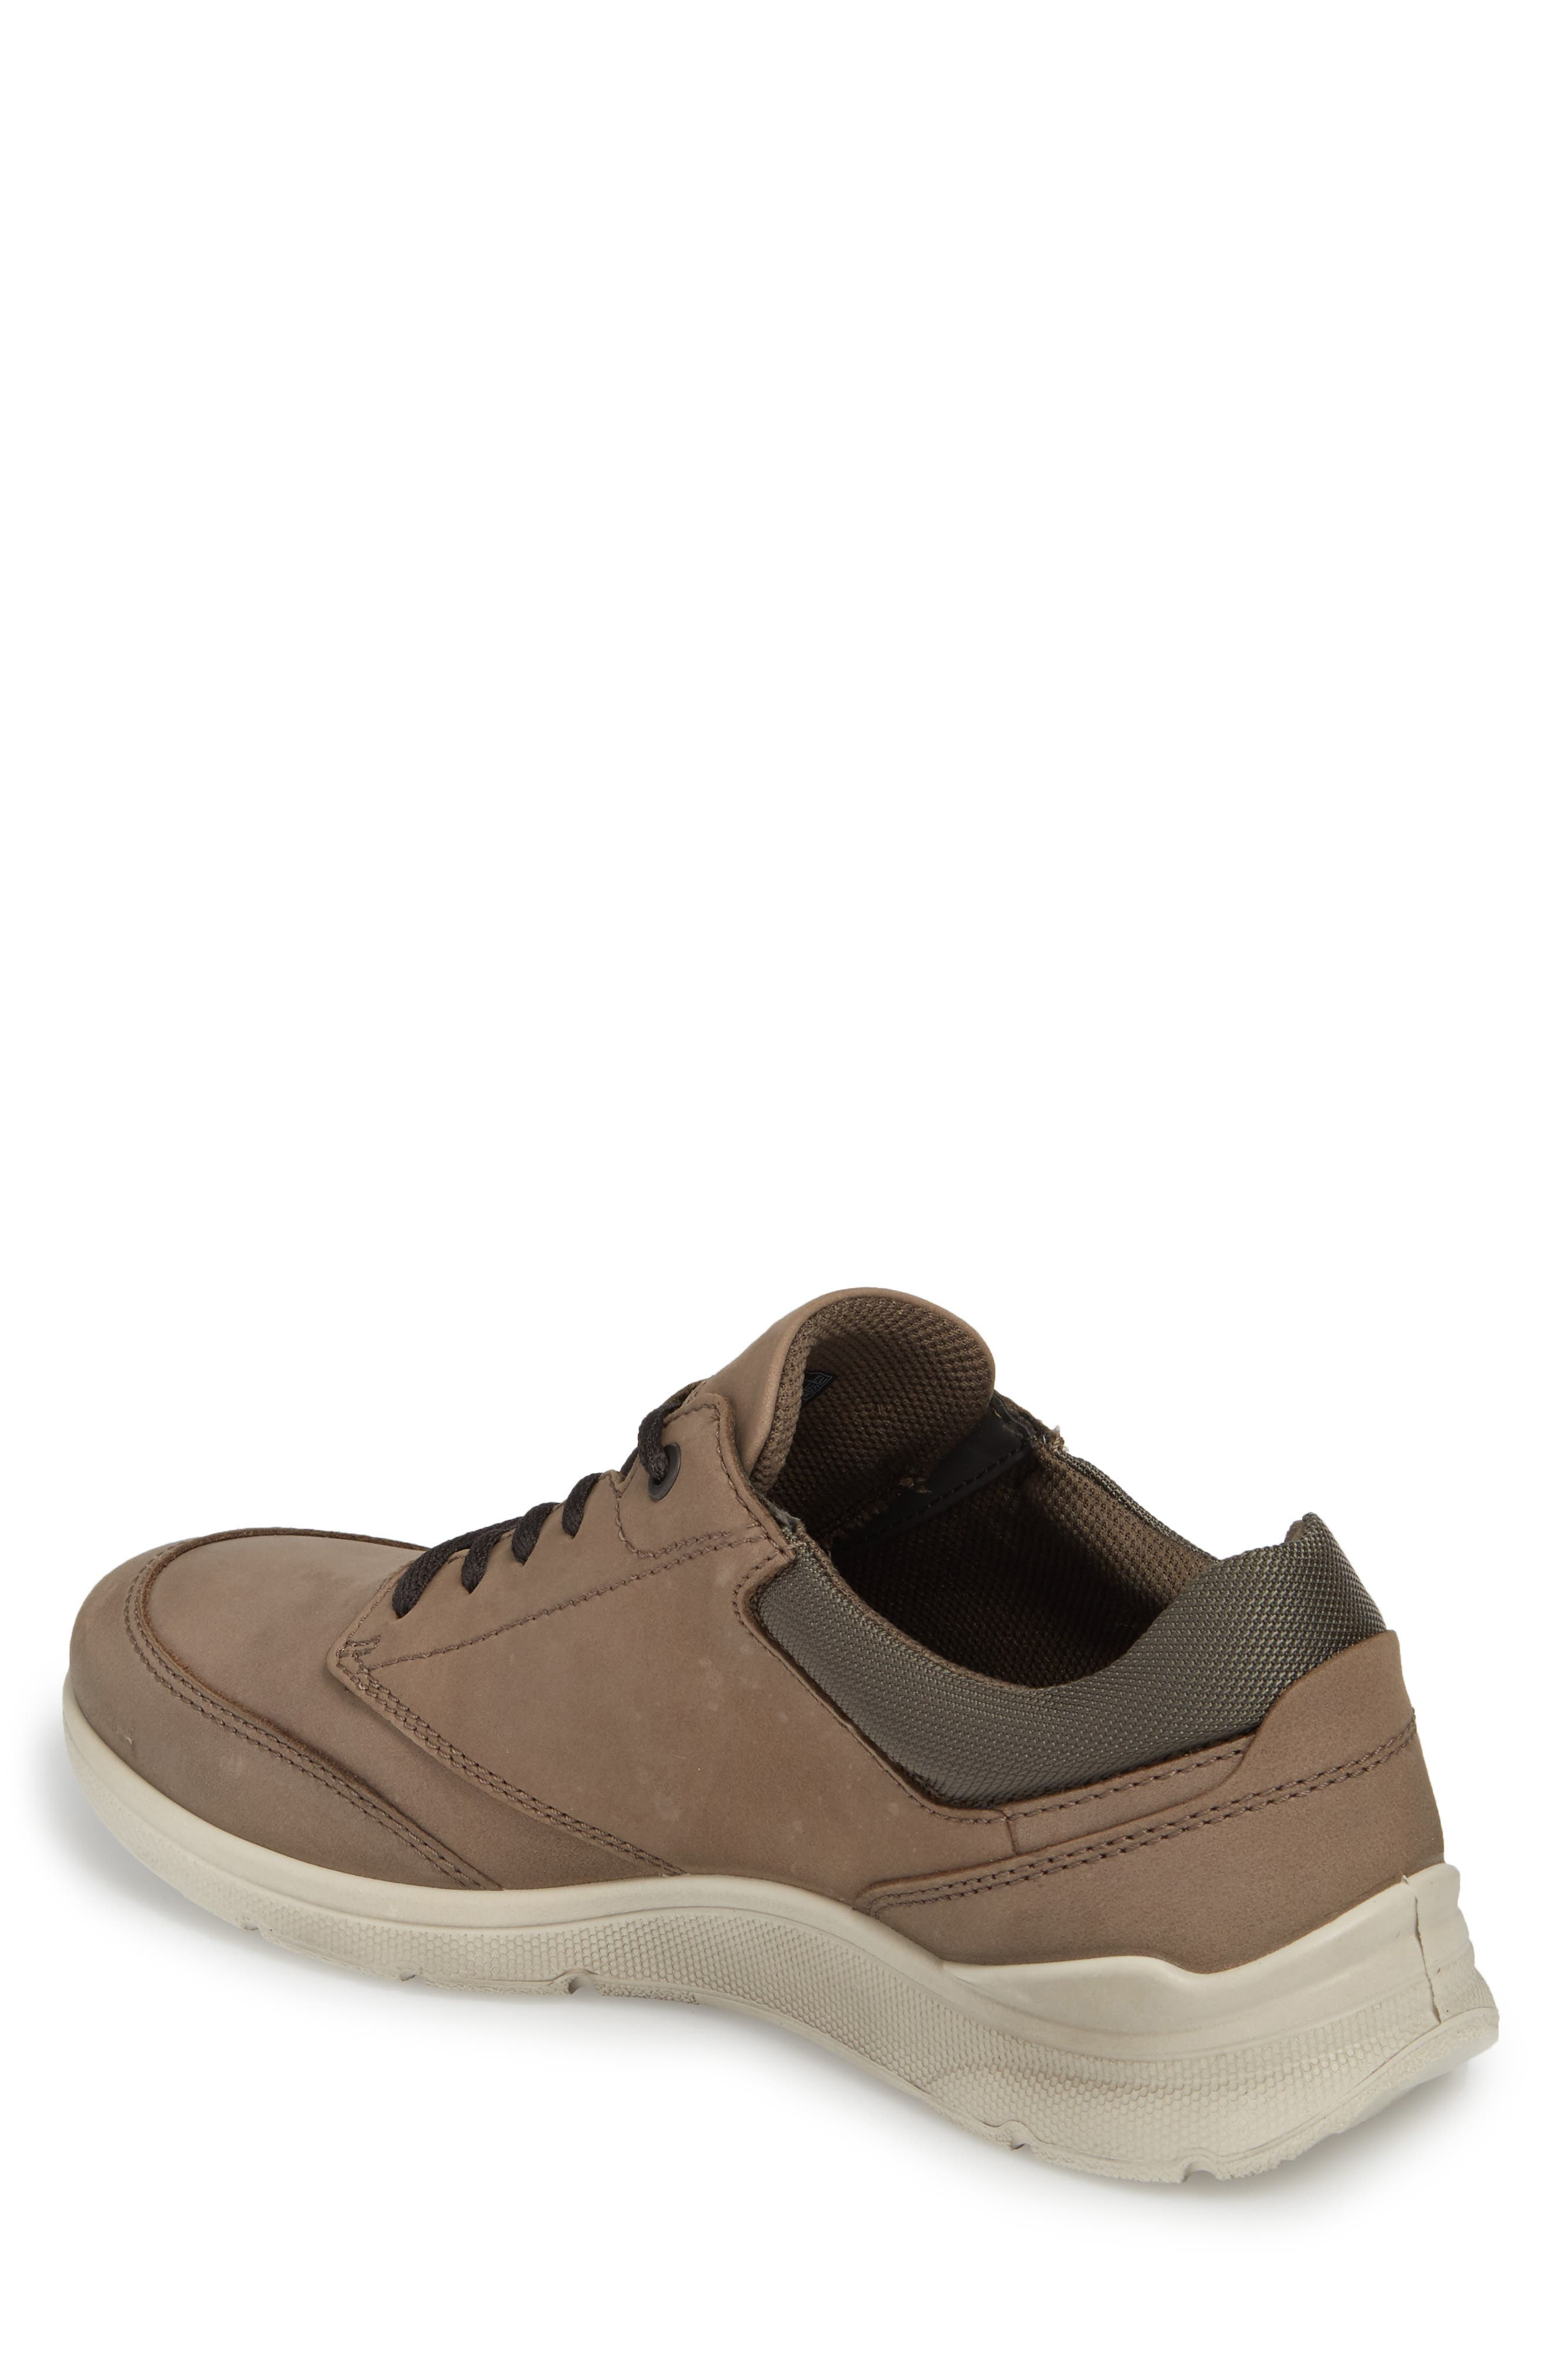 Irving Sneaker,                             Alternate thumbnail 2, color,                             DARK CLAY LEATHER